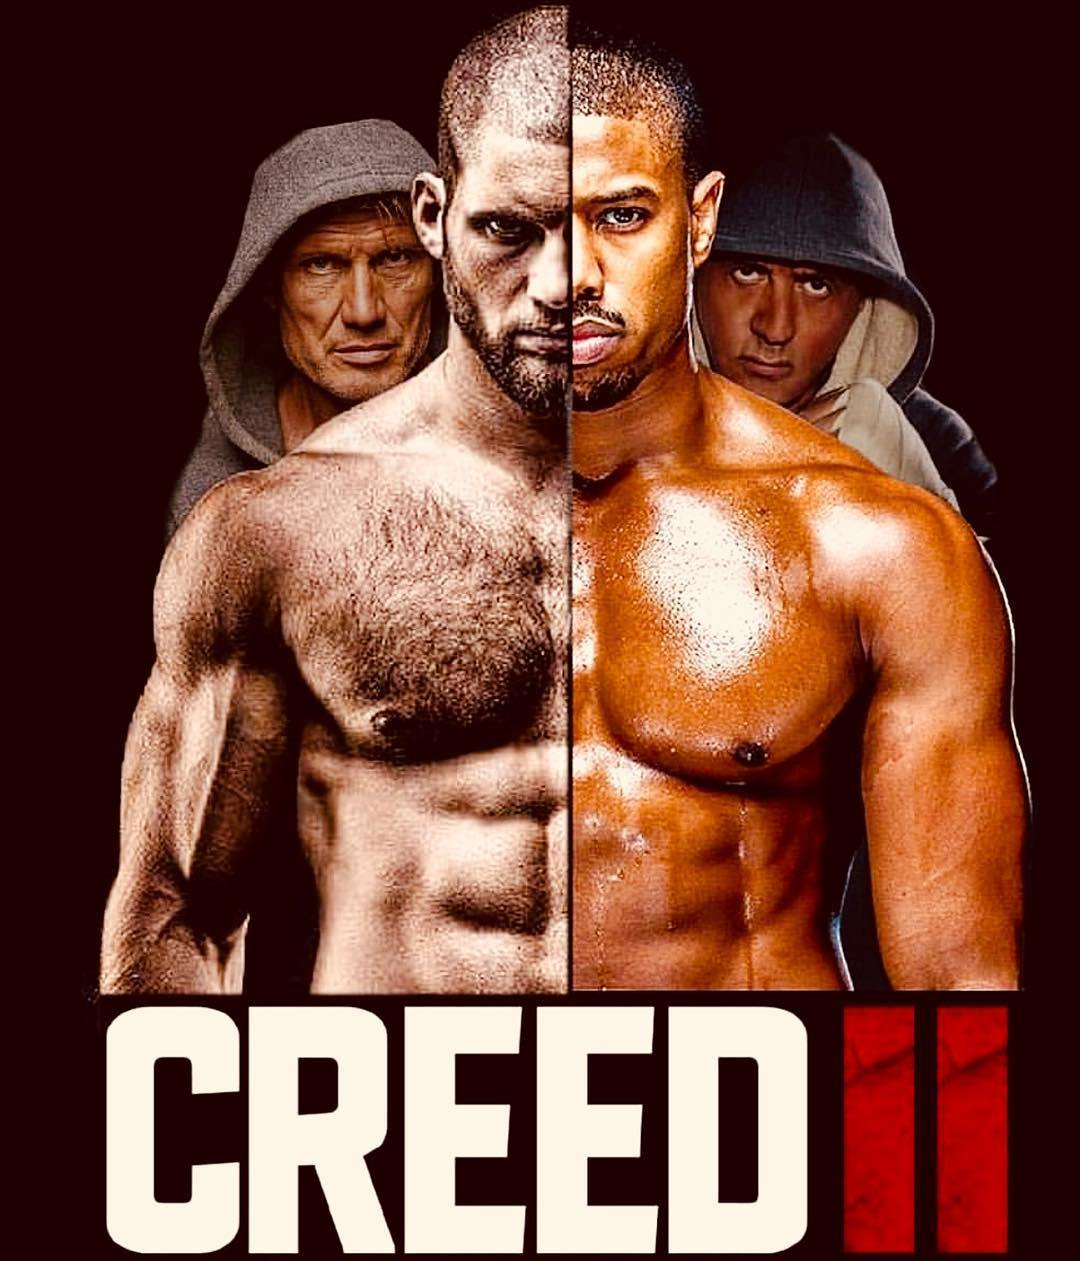 creed 2 poster